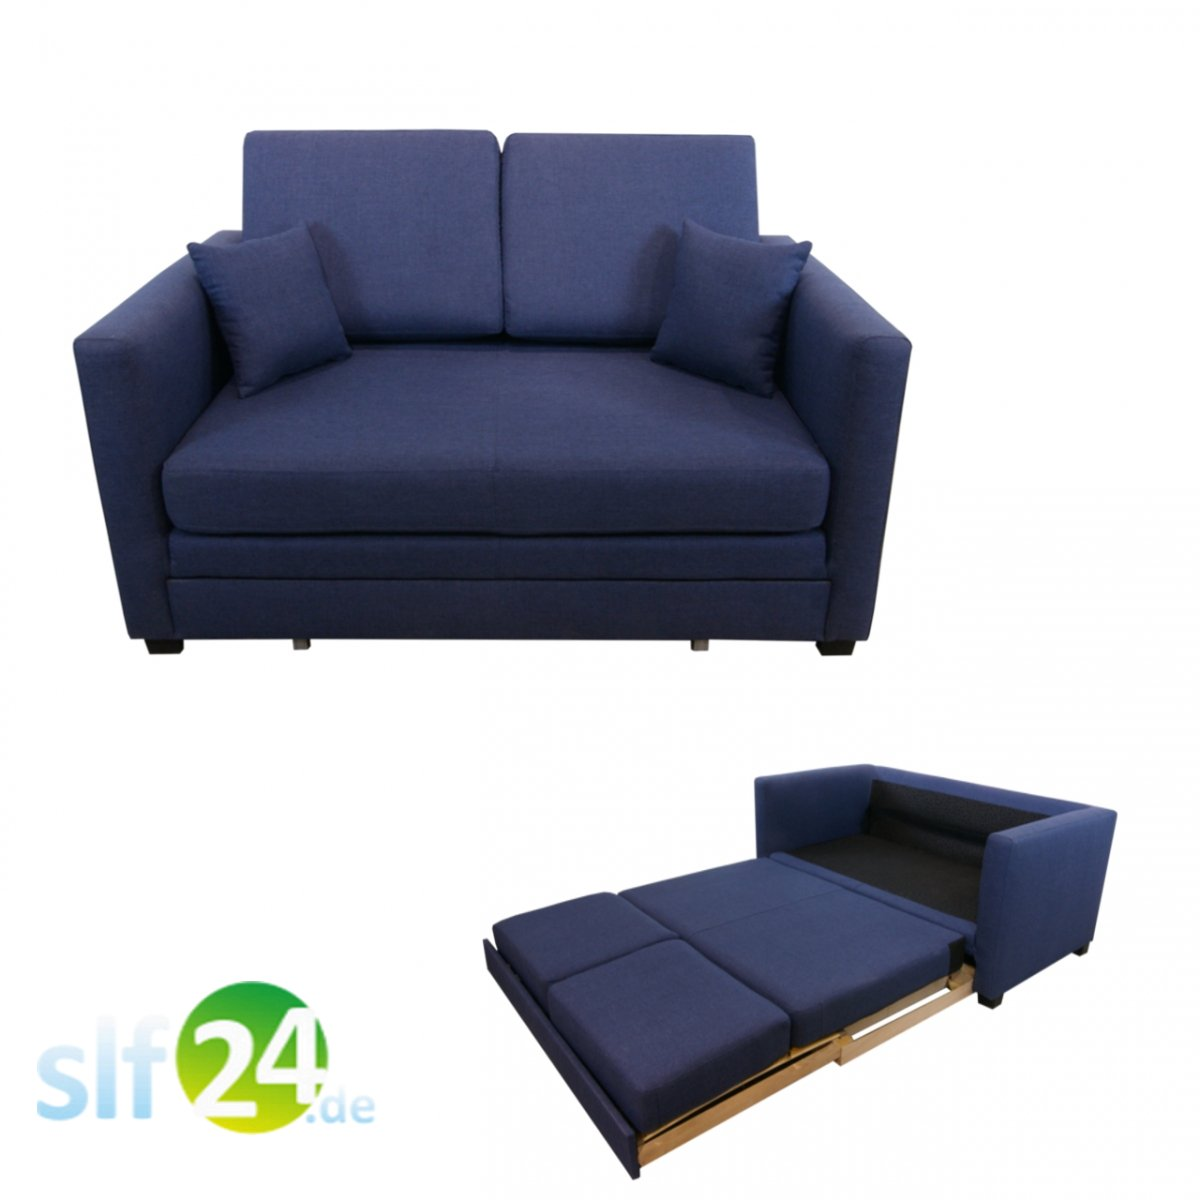 Schlafsofa,Schlafcouch Kindersofa MEXICO Jugendsofa mit ...